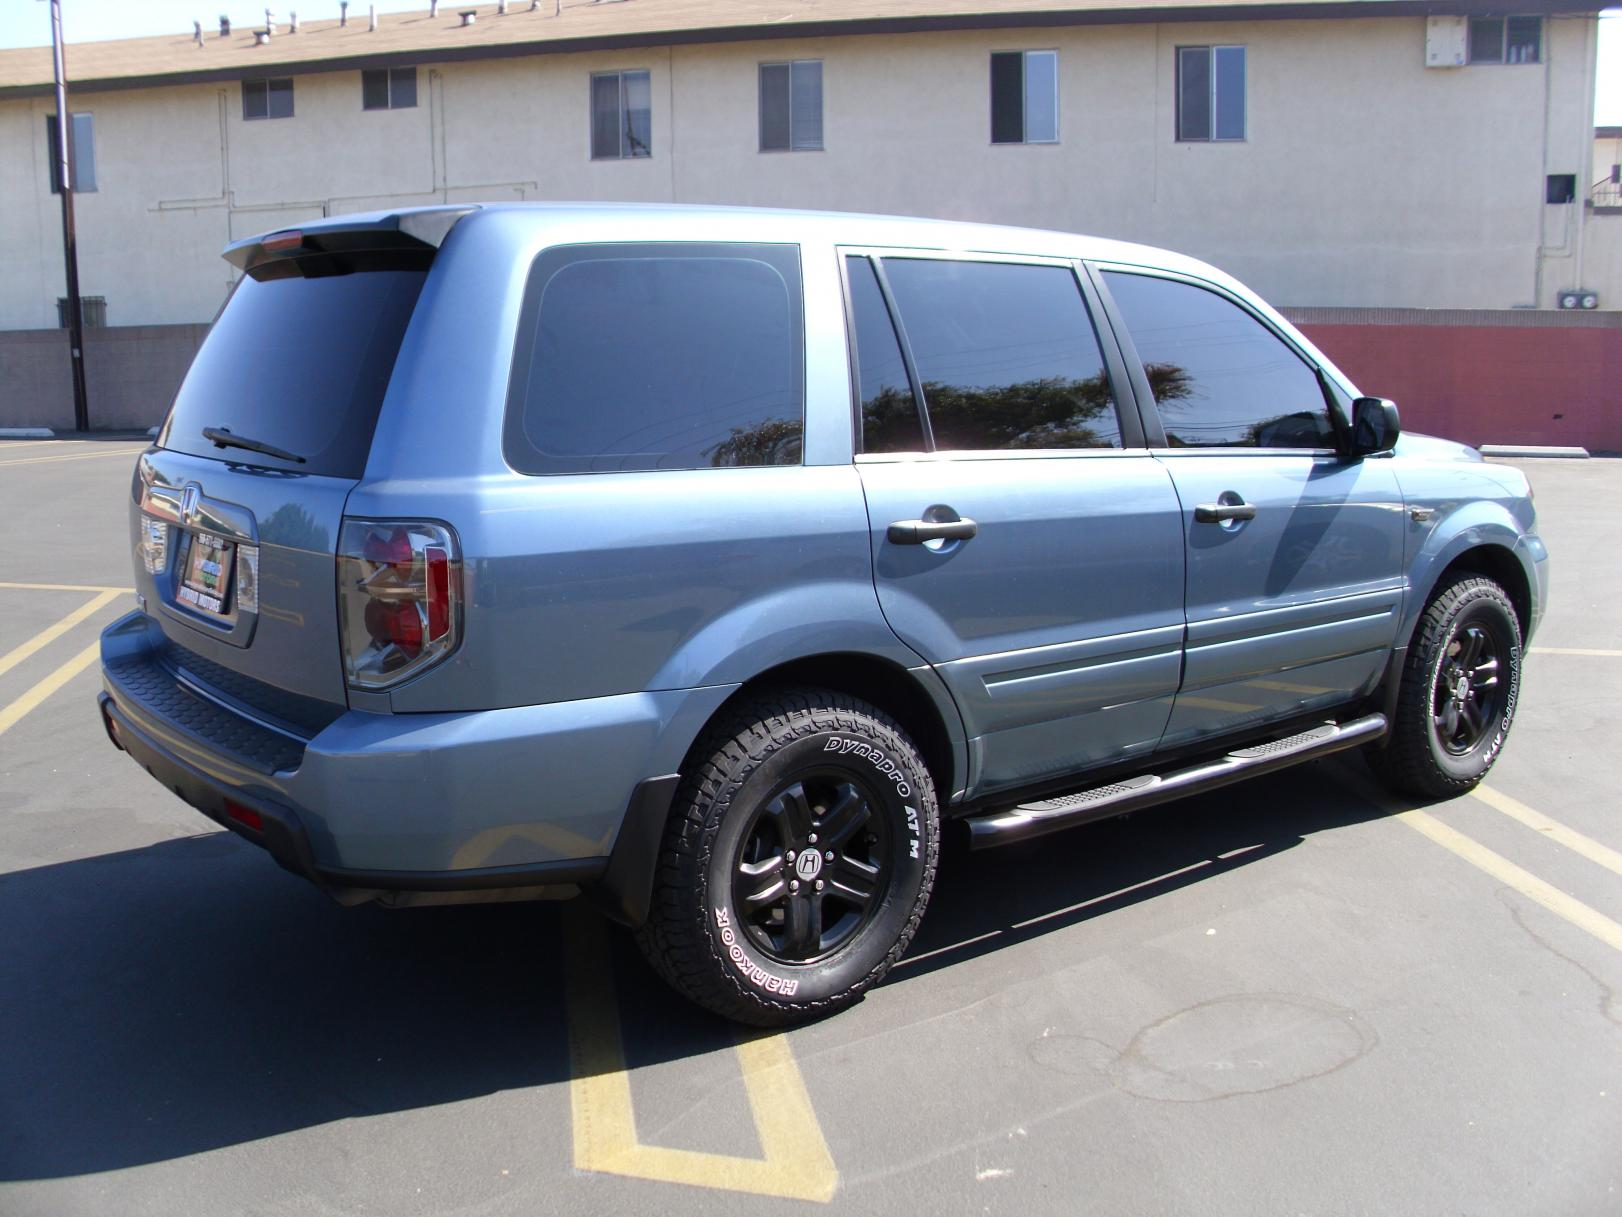 Had a Pilot Makeover day! - Honda Pilot - Honda Pilot Forums